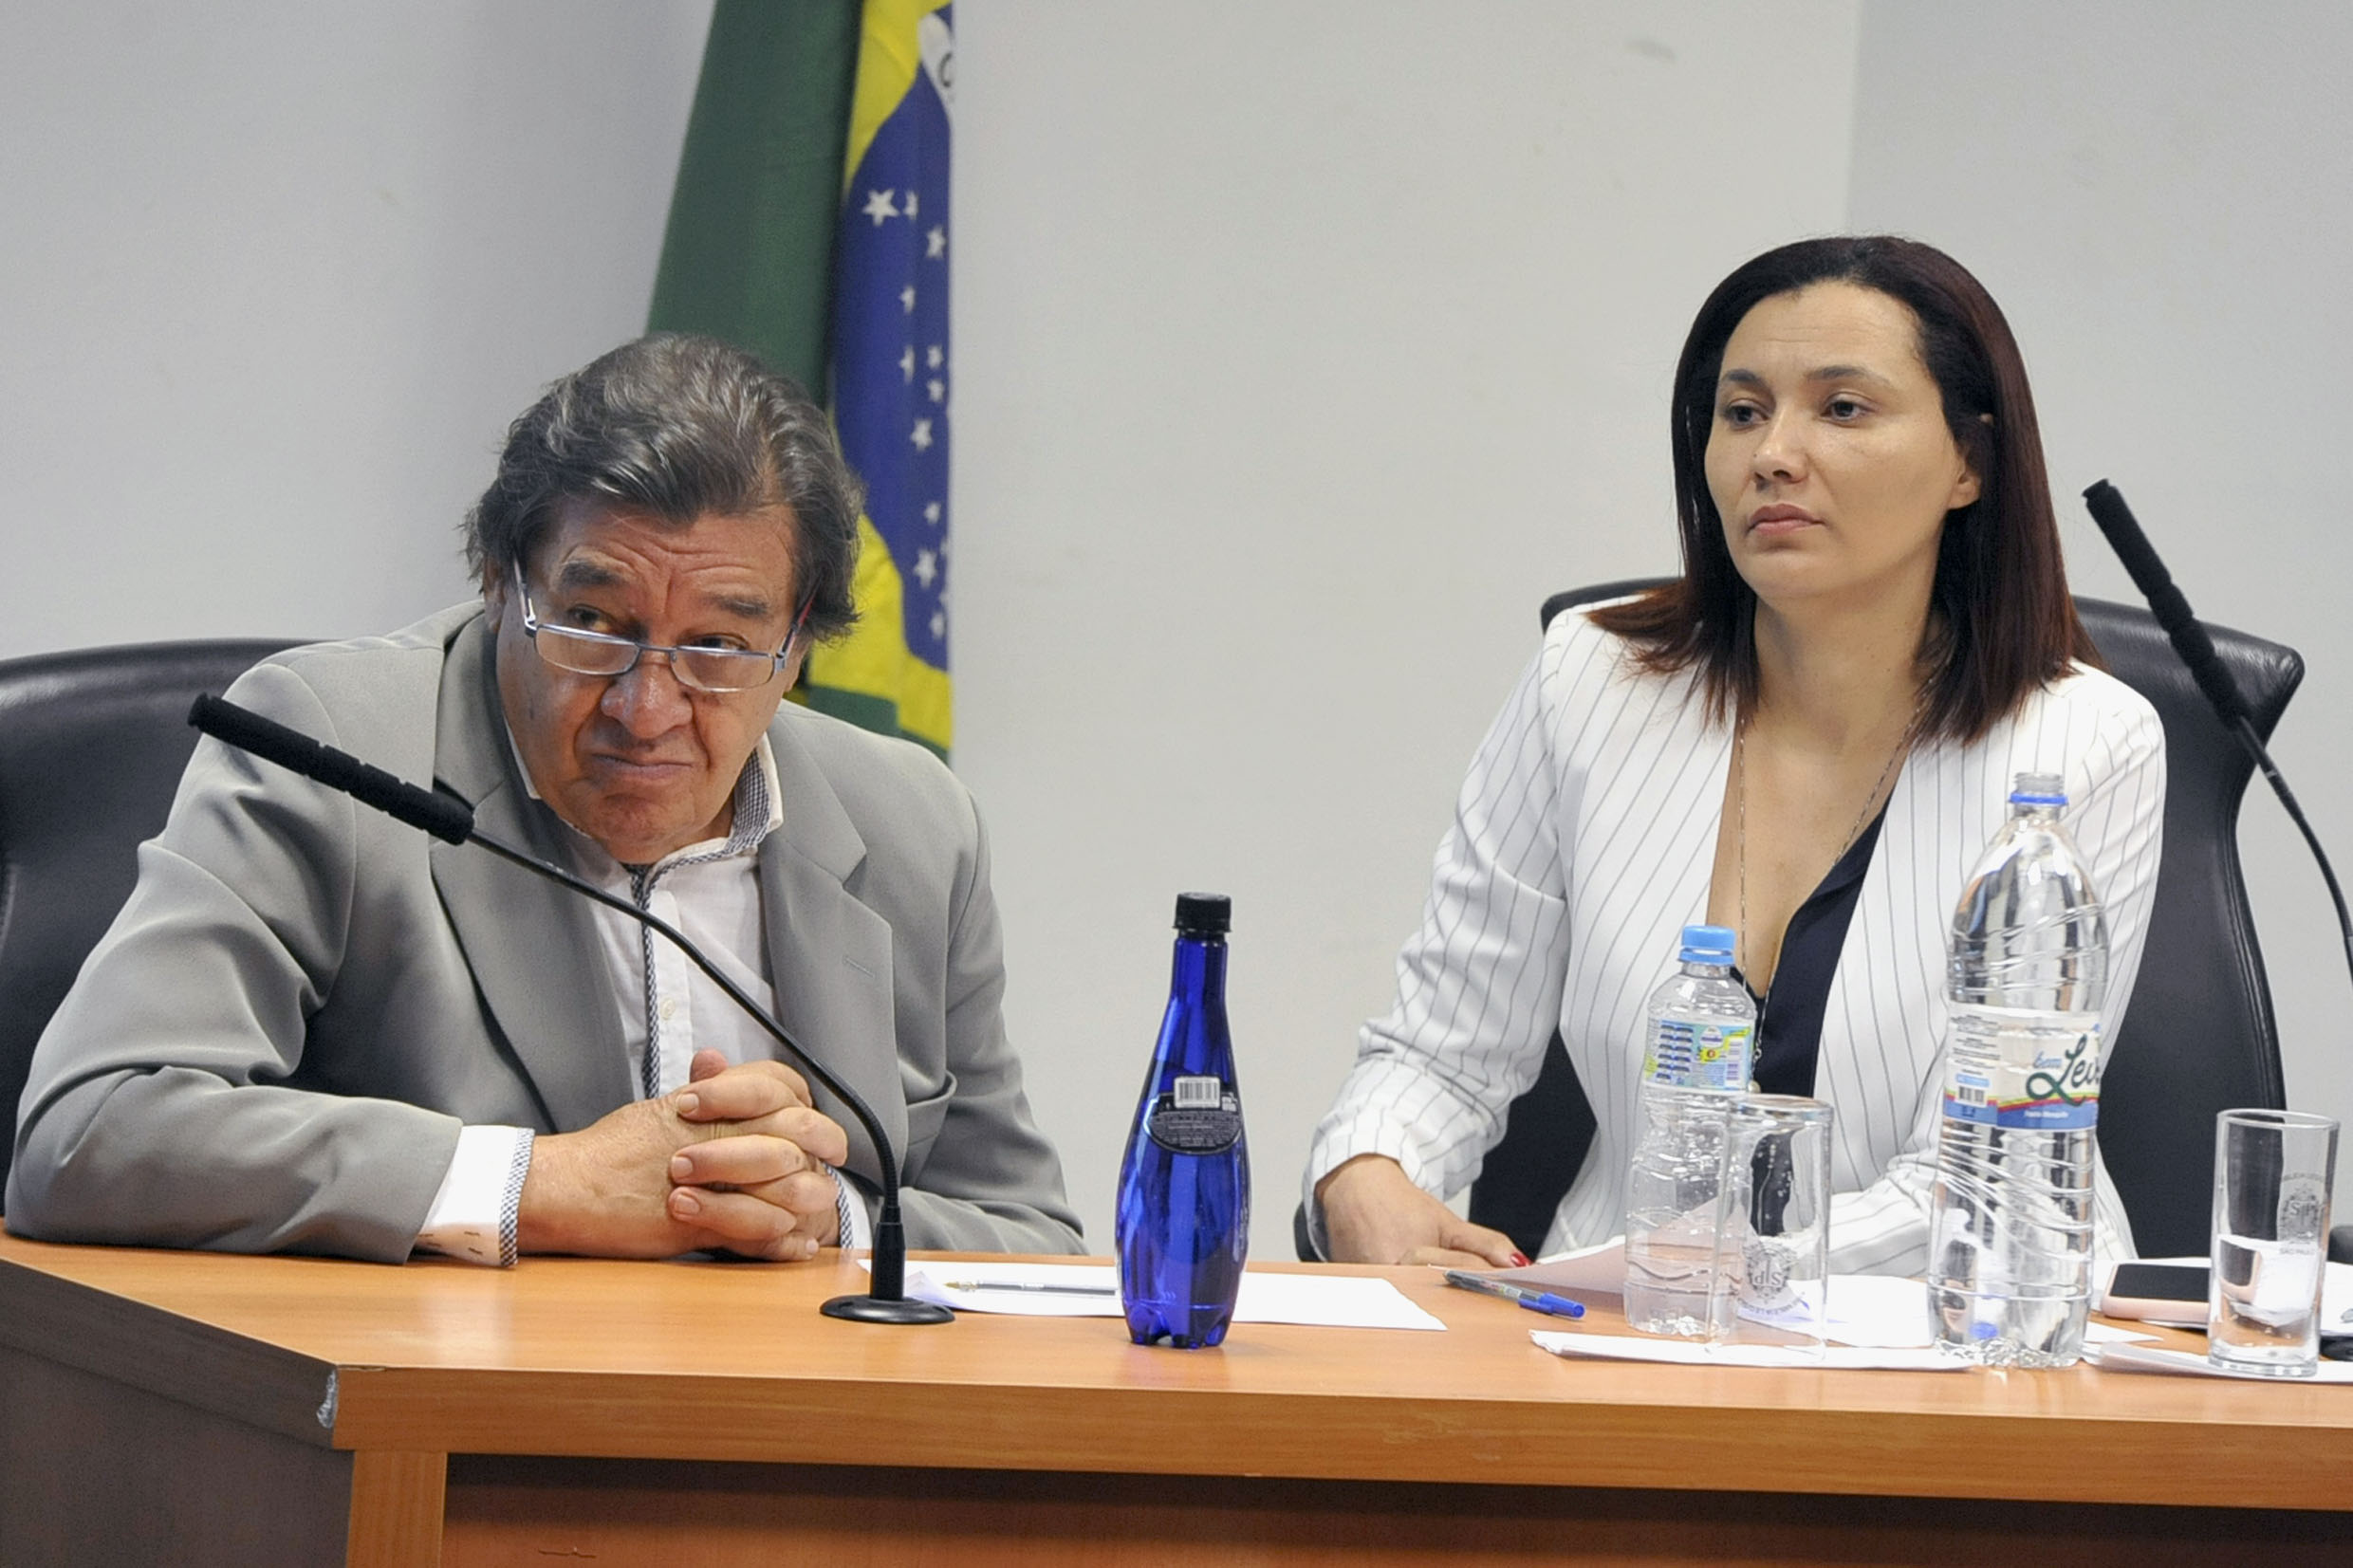 José Carlos Rocha e Marilene Araujo<a style='float:right' href='https://www3.al.sp.gov.br/repositorio/noticia/N-05-2019/fg235011.jpg' target=_blank><img src='/_img/material-file-download-white.png' width='14px' alt='Clique para baixar a imagem'></a>